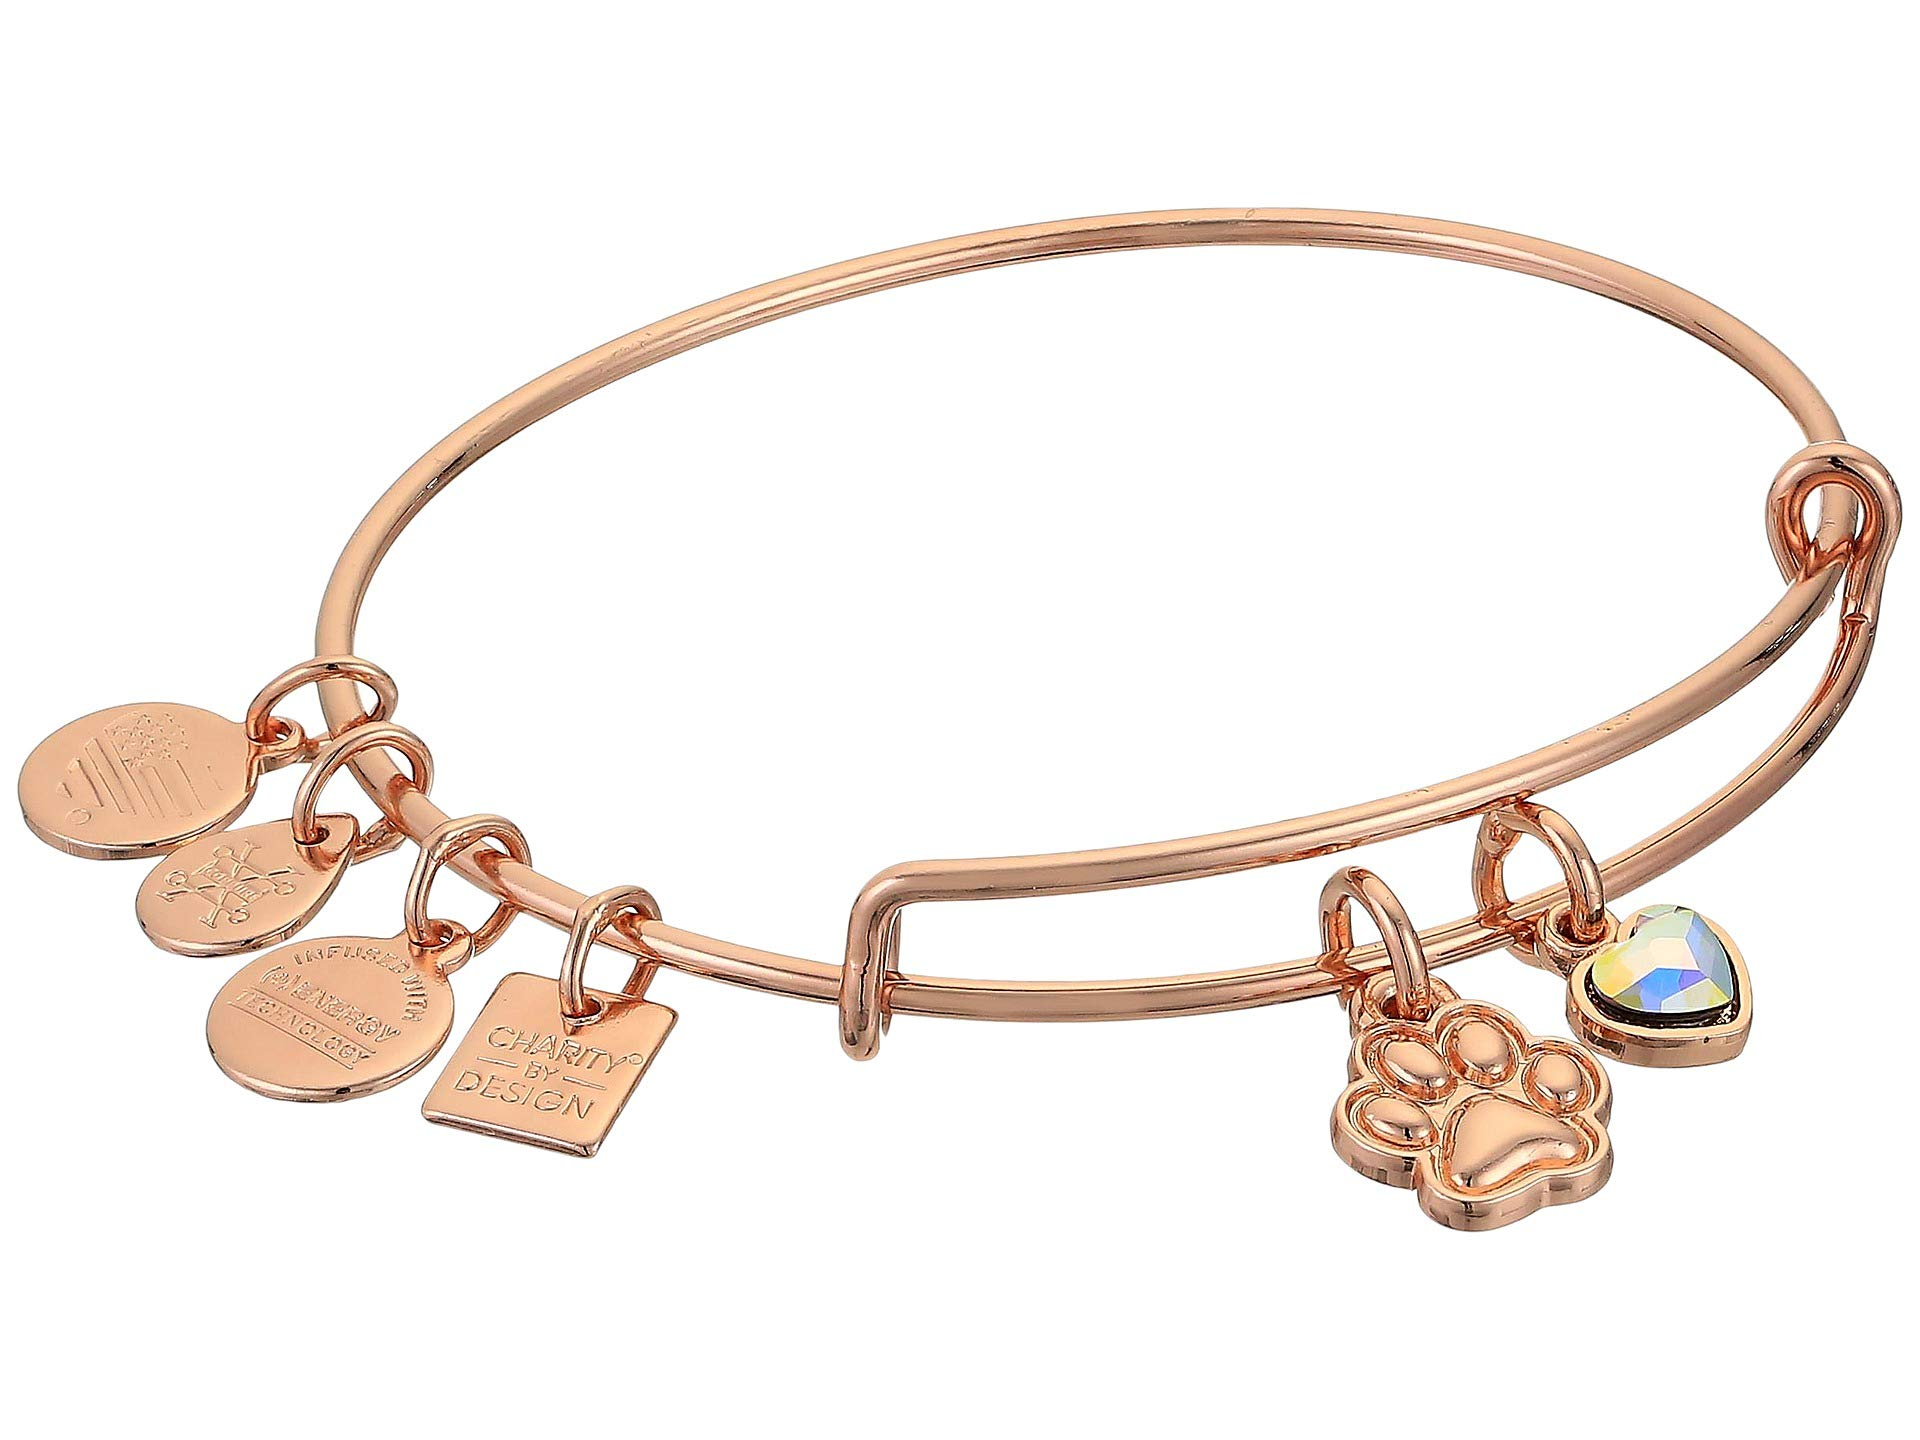 Alex and Ani Women's Charity by Design, Paw Print Duo Charm Bracelet, Shiny Rose Gold